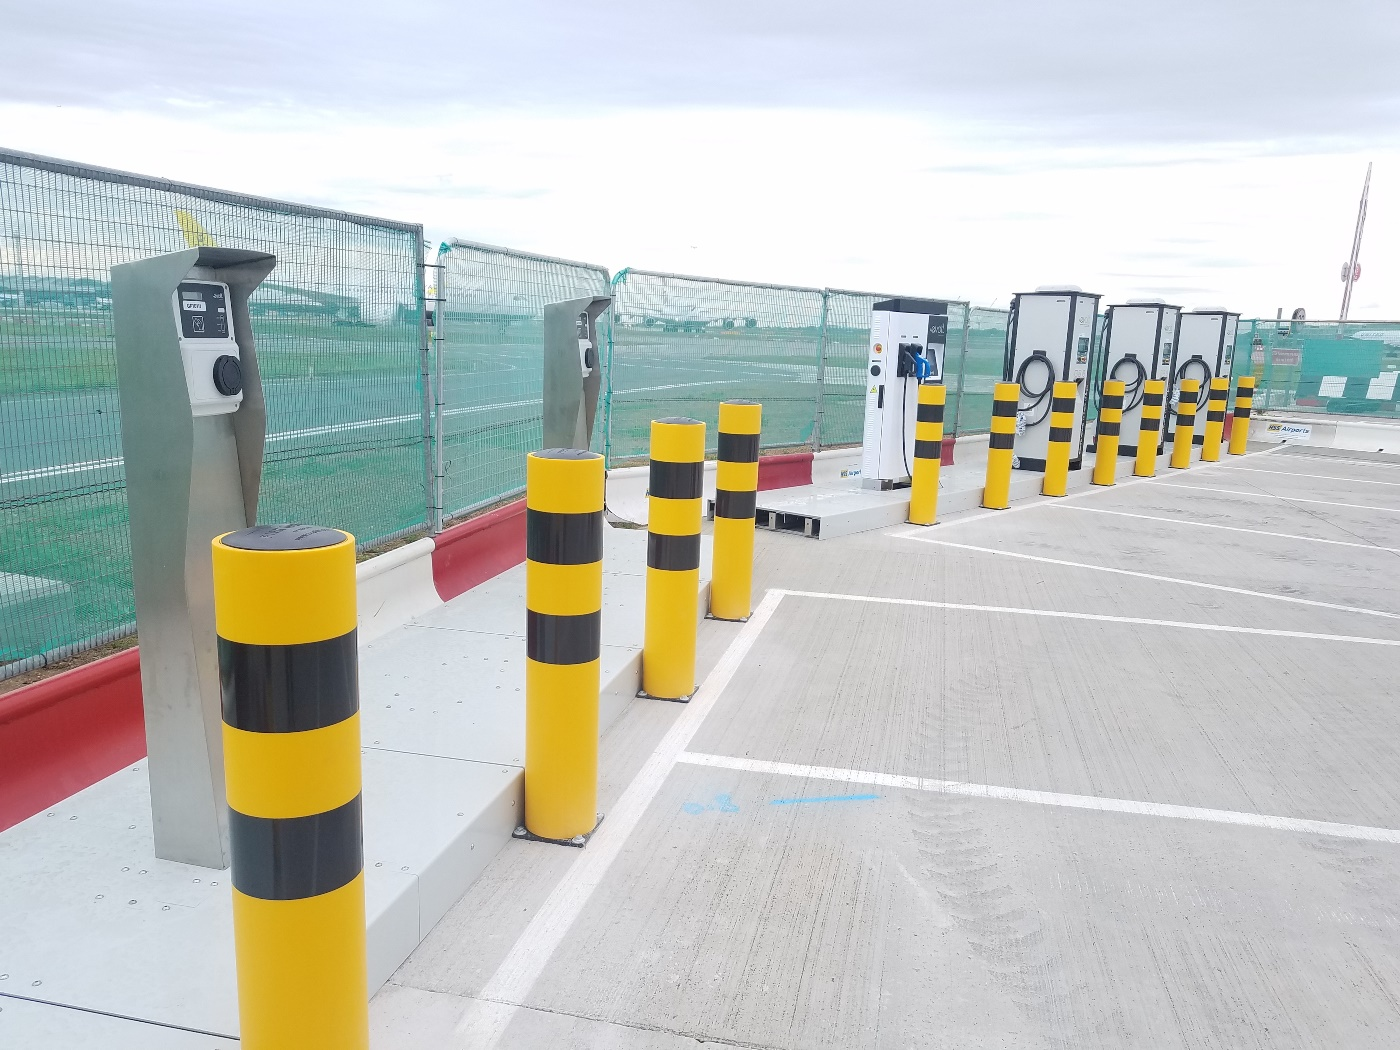 Heathrow airport rapid chargers